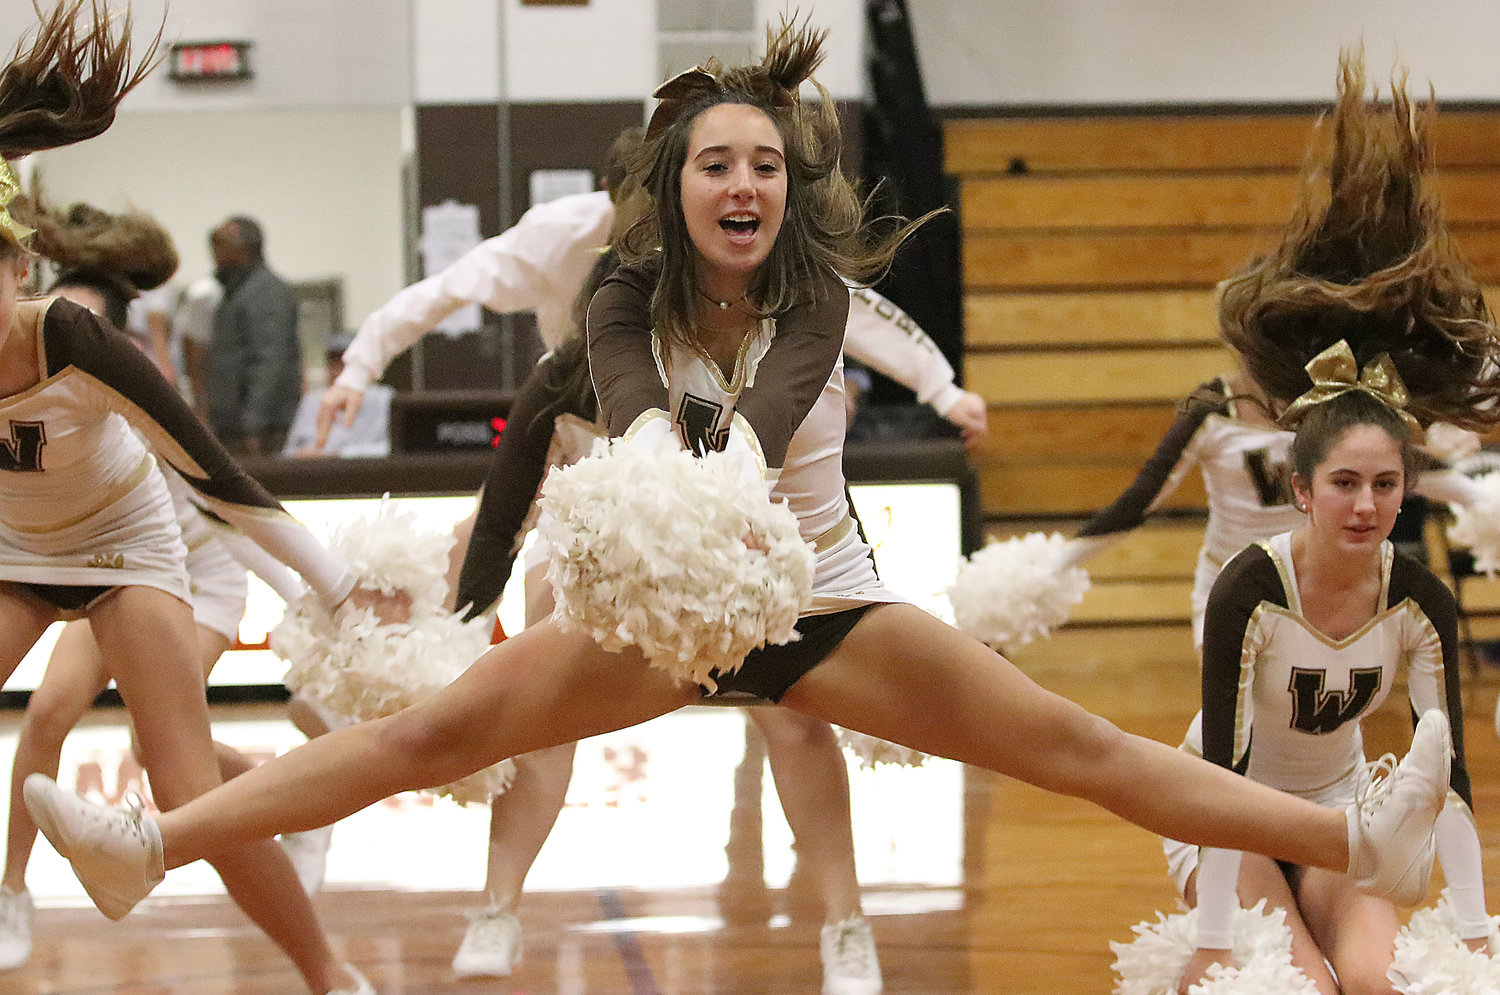 Abby Sousa (middle) and the Westport cheerleaders perform a cheer during halftime.